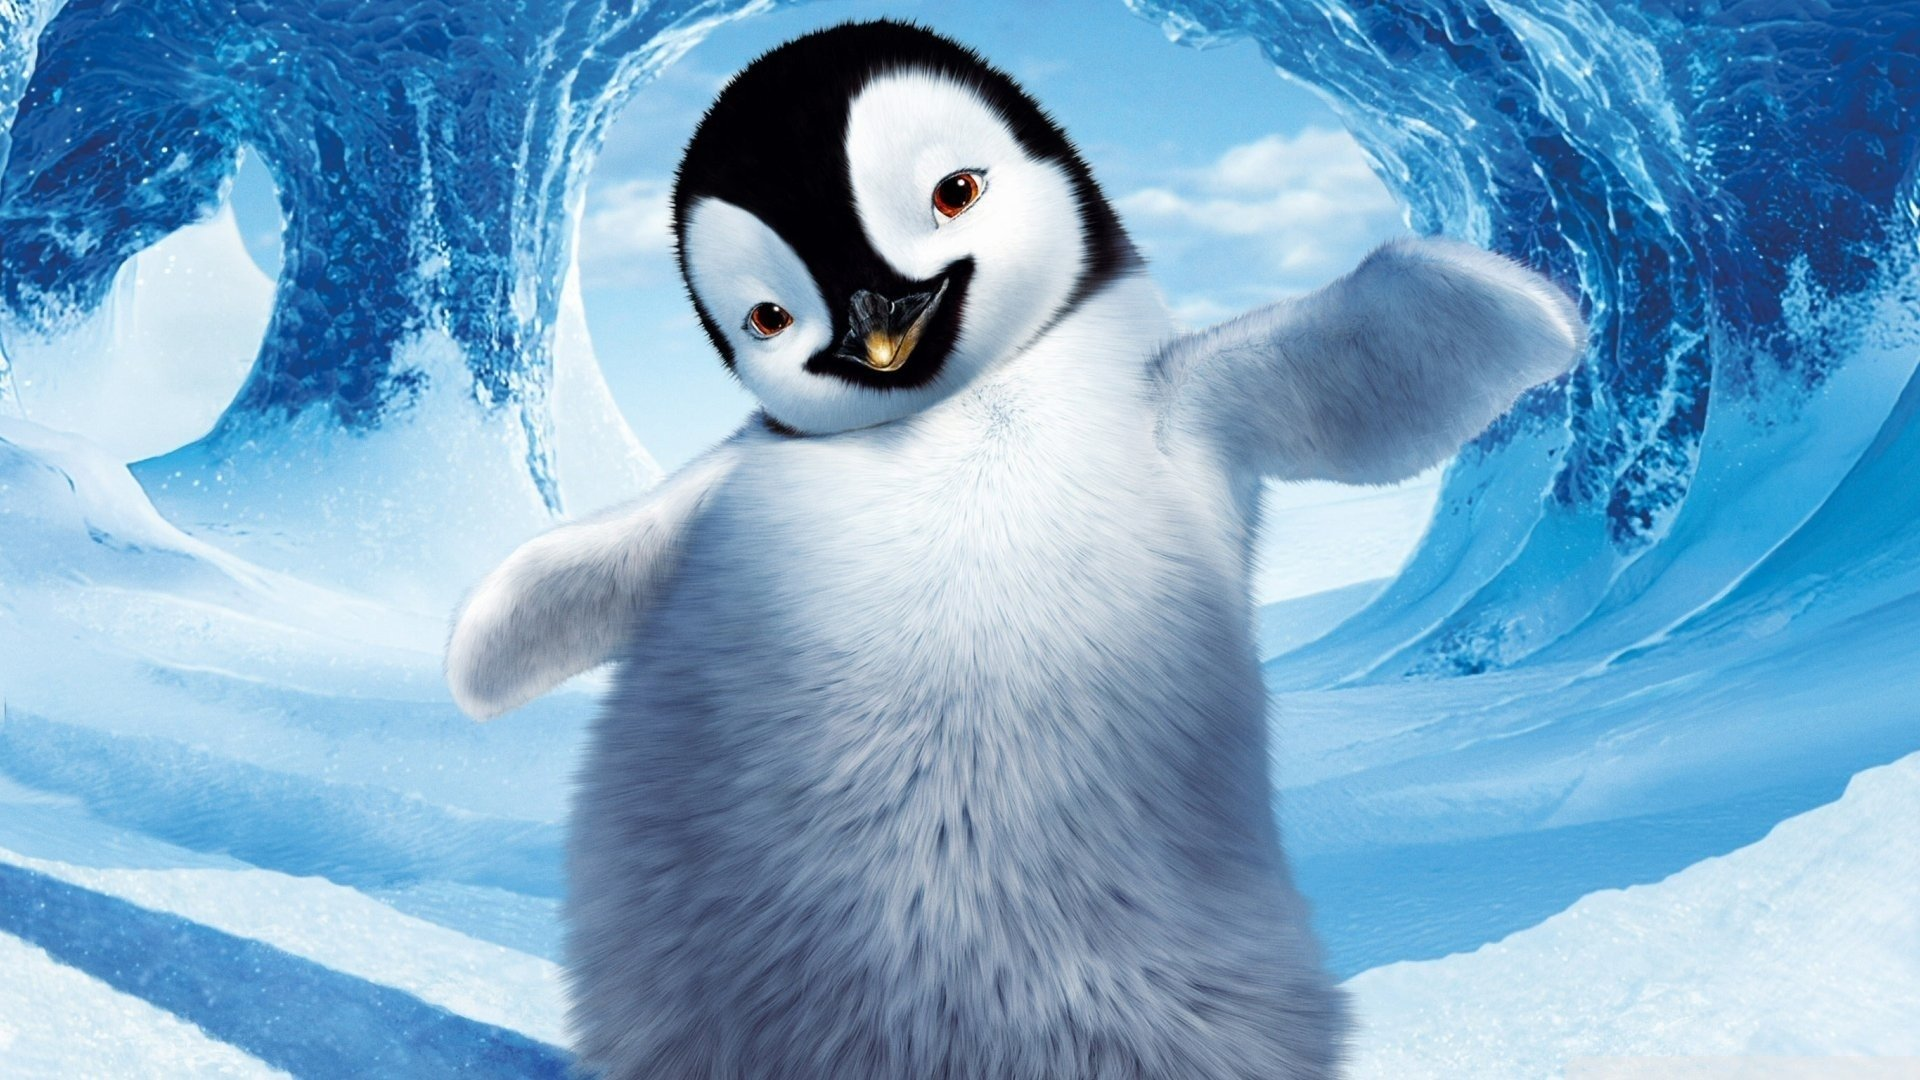 11 happy feet hd wallpapers | background images - wallpaper abyss